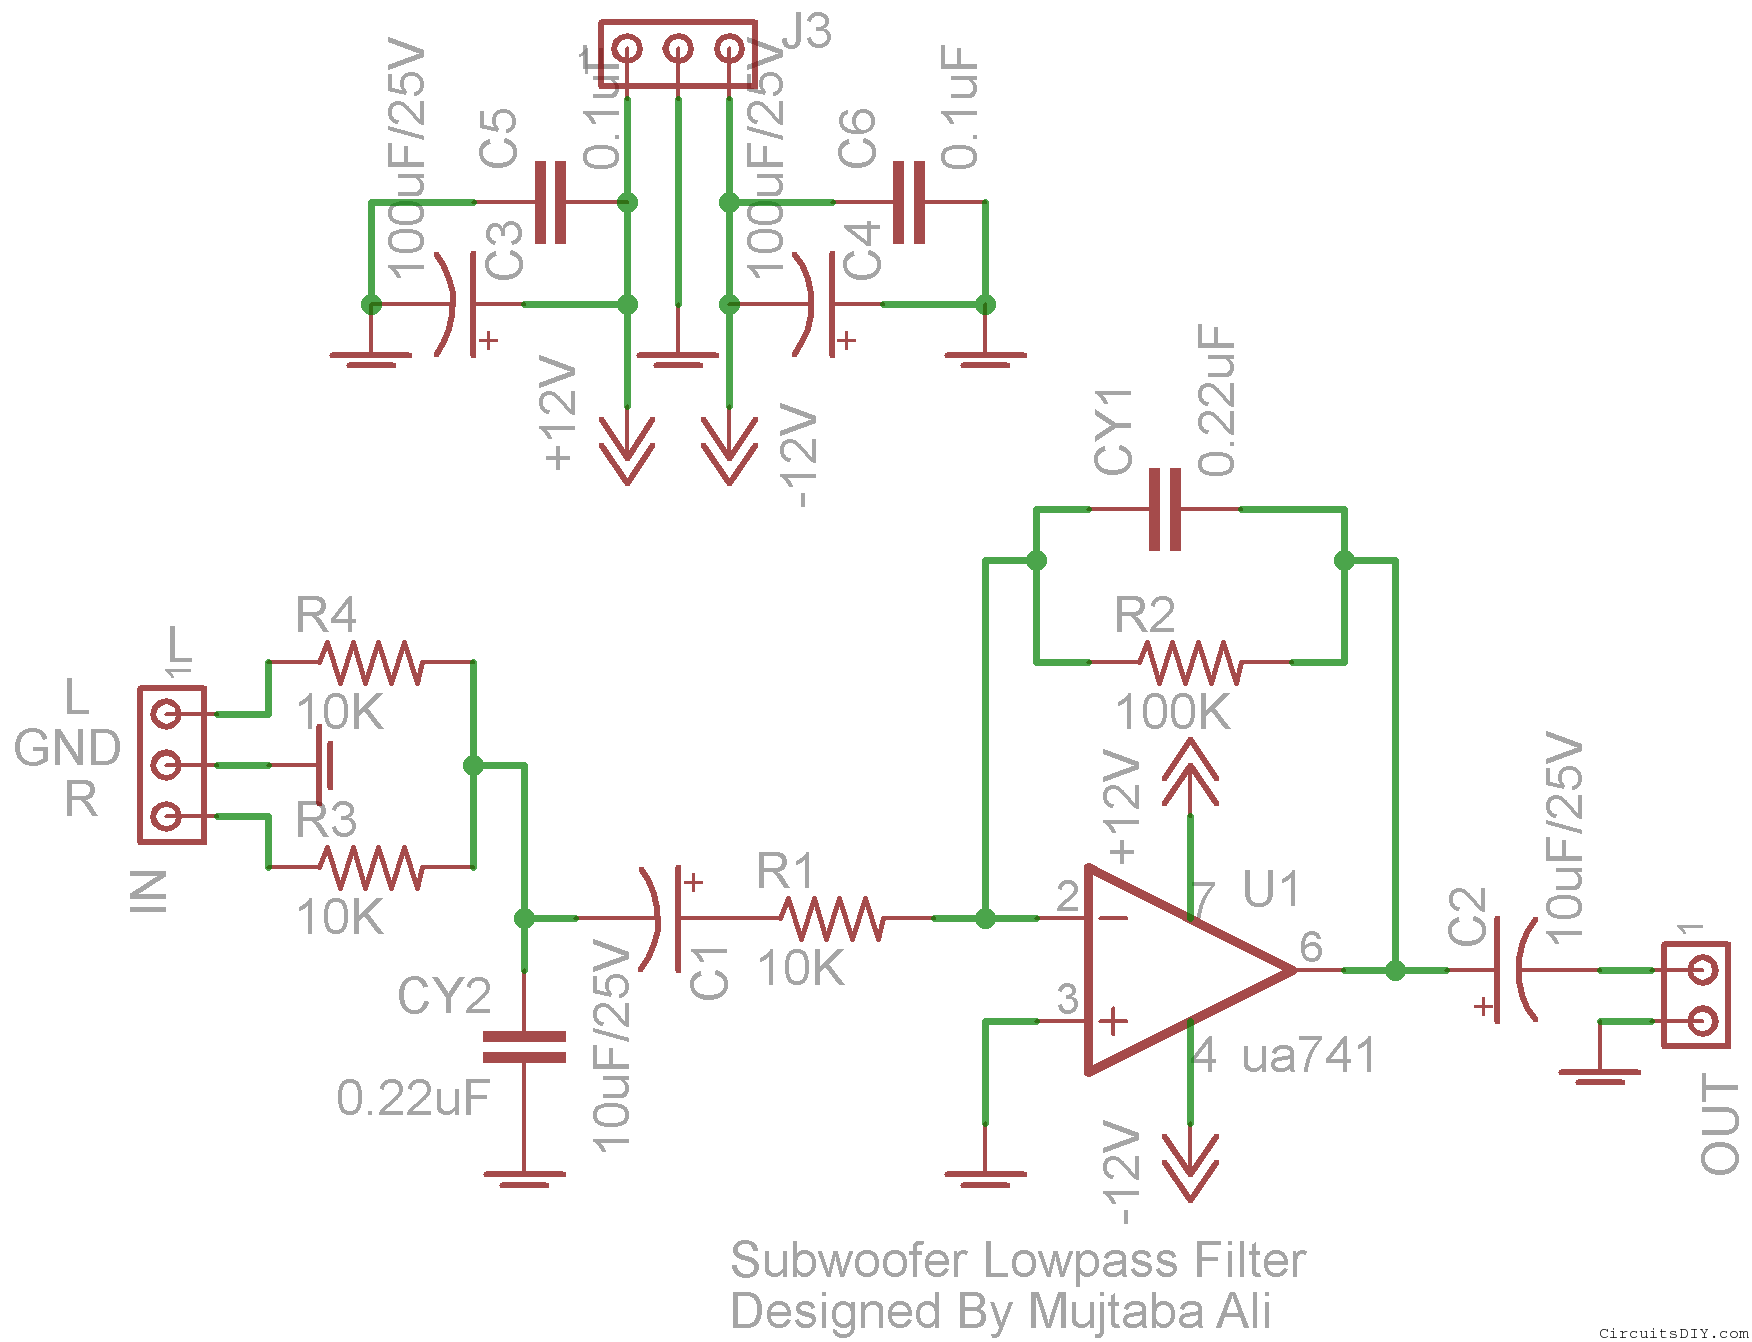 Subwoofer Lowpass Filter Circuit Using Ua741 Single Op Amp Ic Opamp Low High Battery Charger Controller Pass Diagram